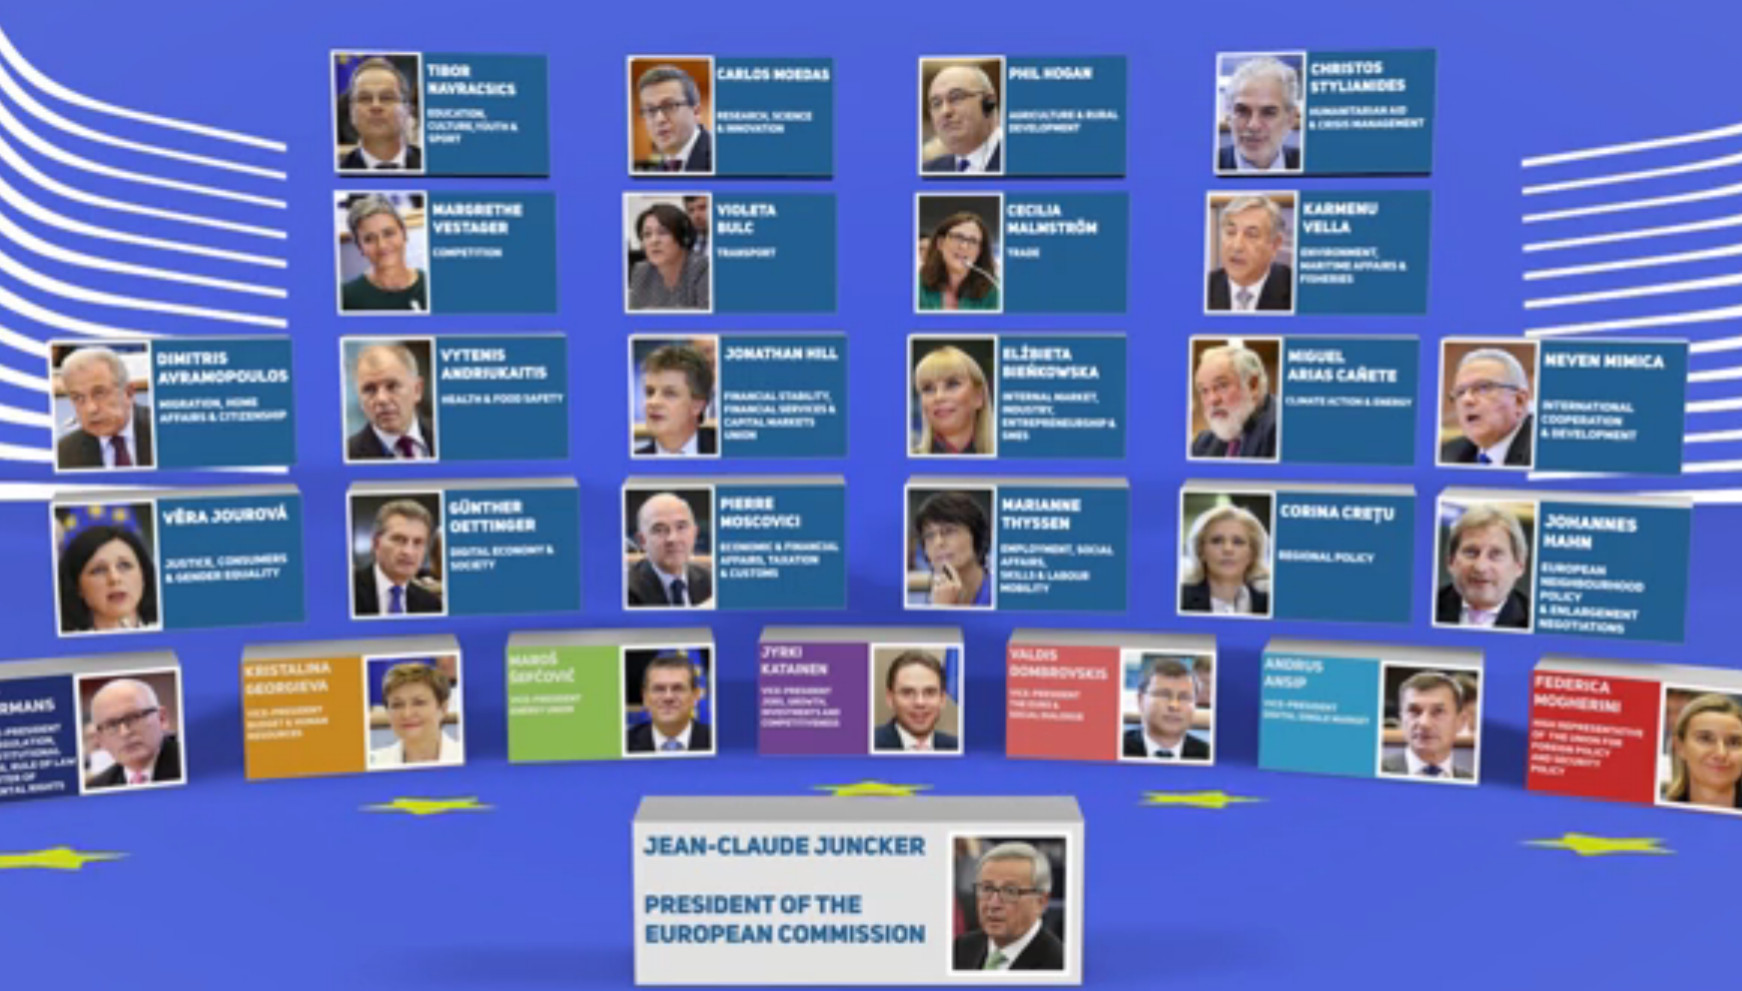 Juncker Commission explained in 3 minutes  VIDEO